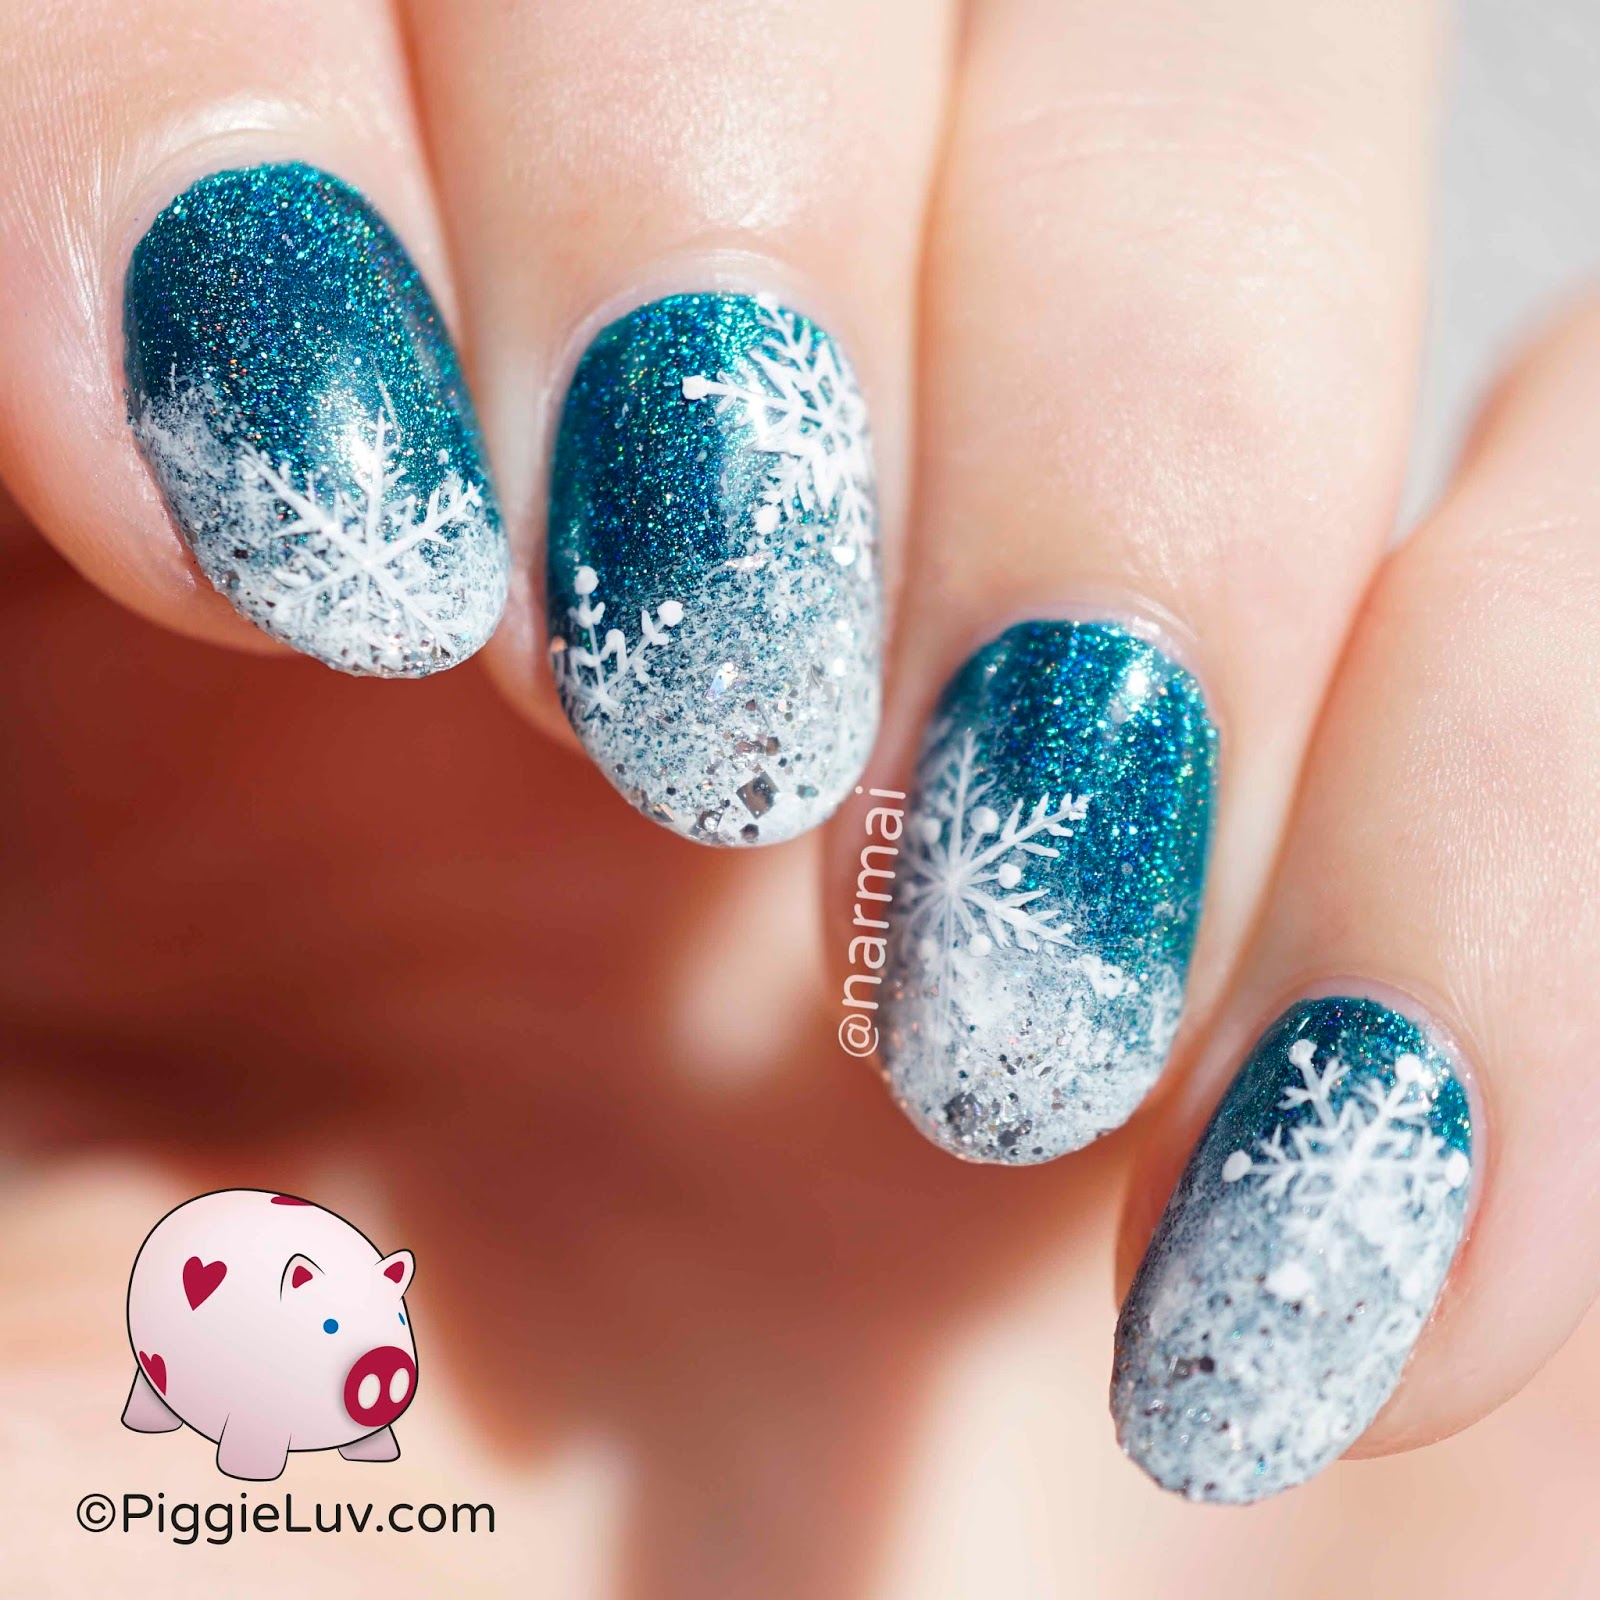 Piggieluv flakage snow nail art tutorial you are battling piles of snow i have no flakage whatsoever nothing nada can you send some in the mail thanks in the mean time this nail art will prinsesfo Images